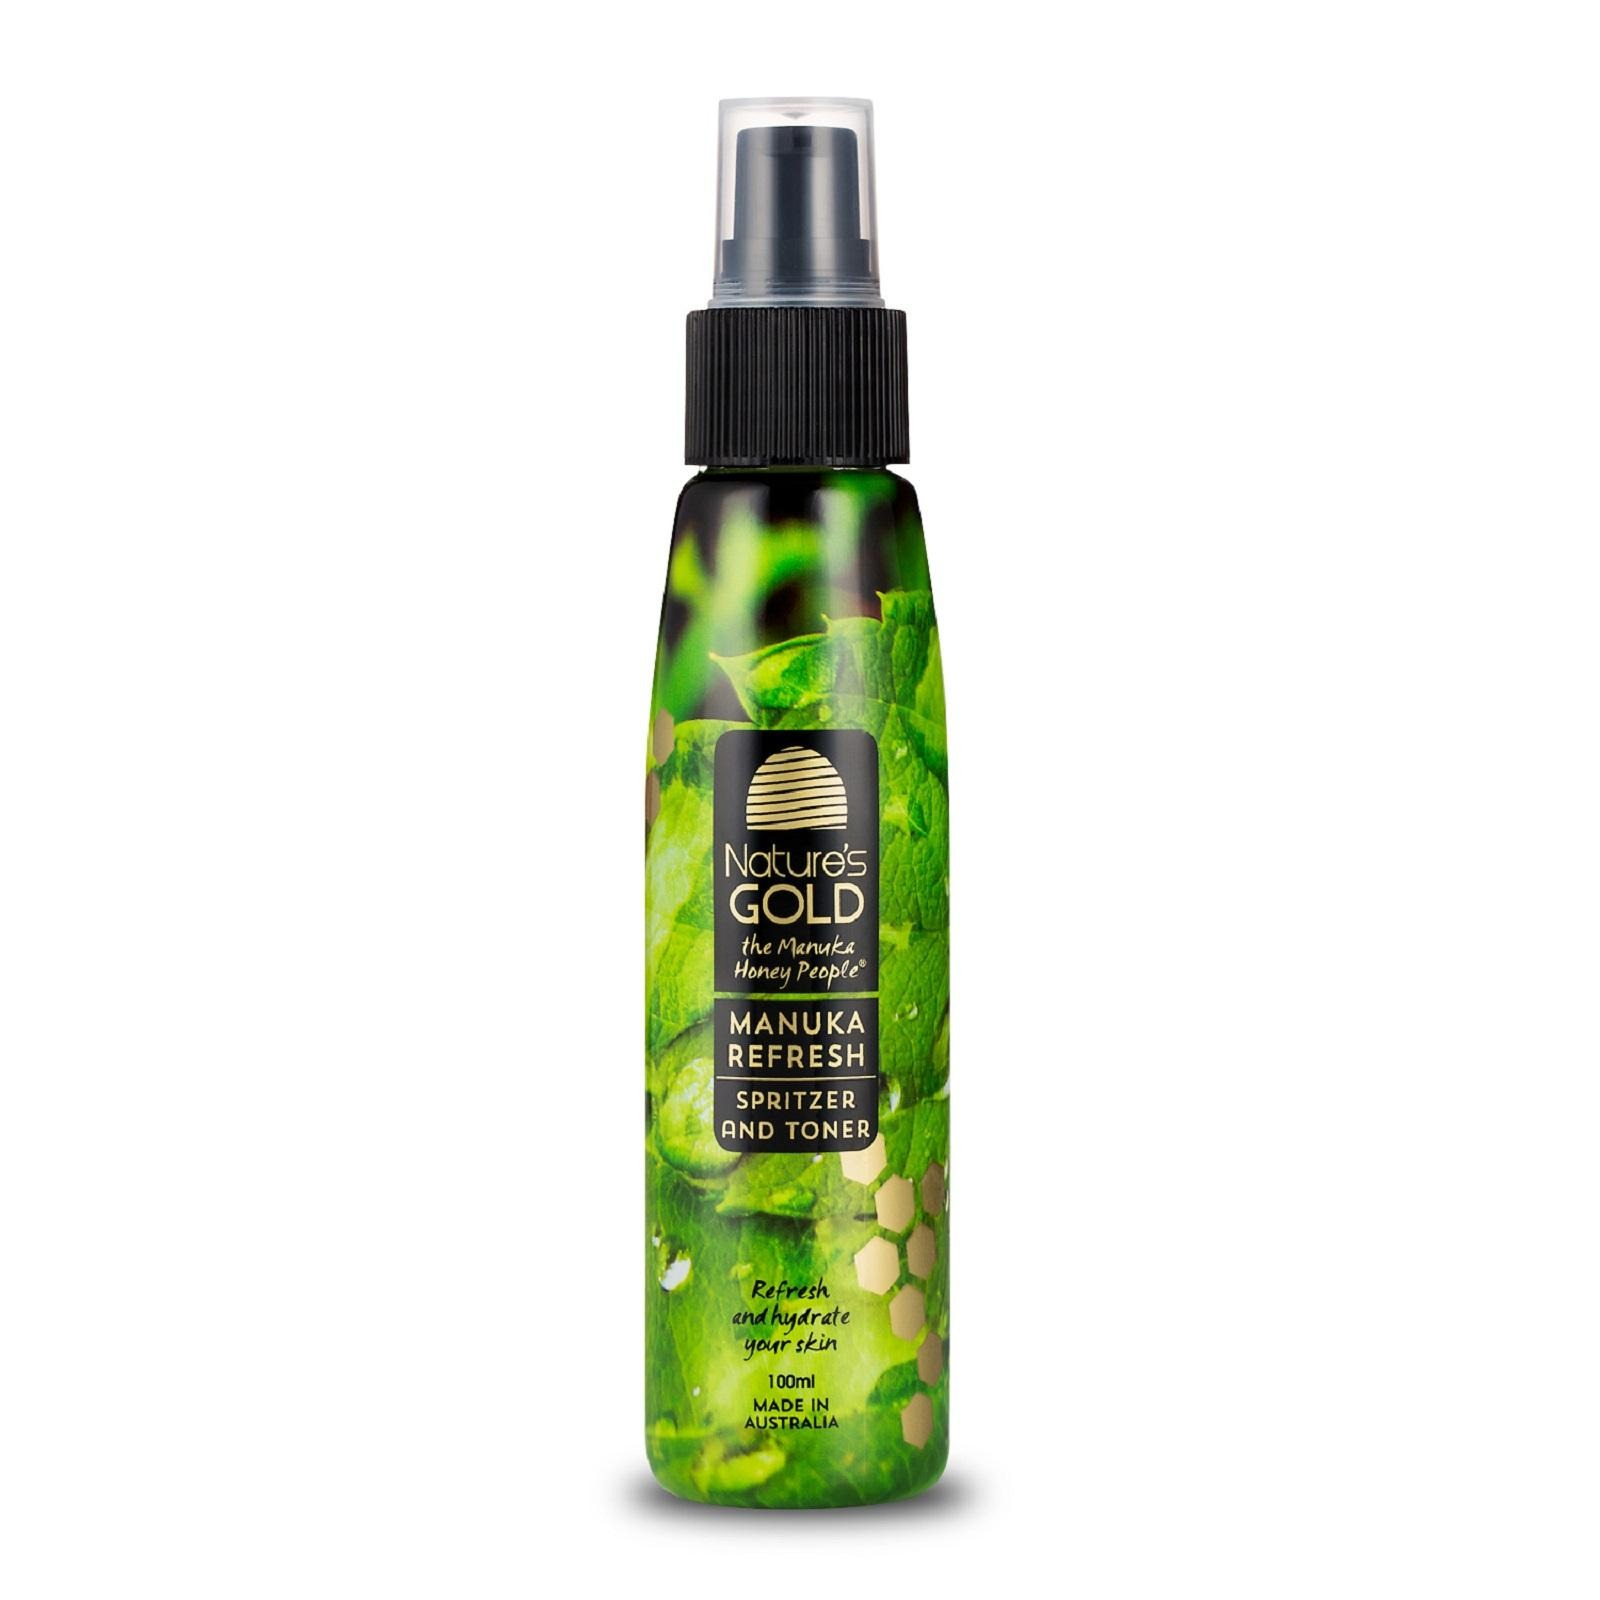 Nature's Gold Manuka Refresh Spritzer & Toner